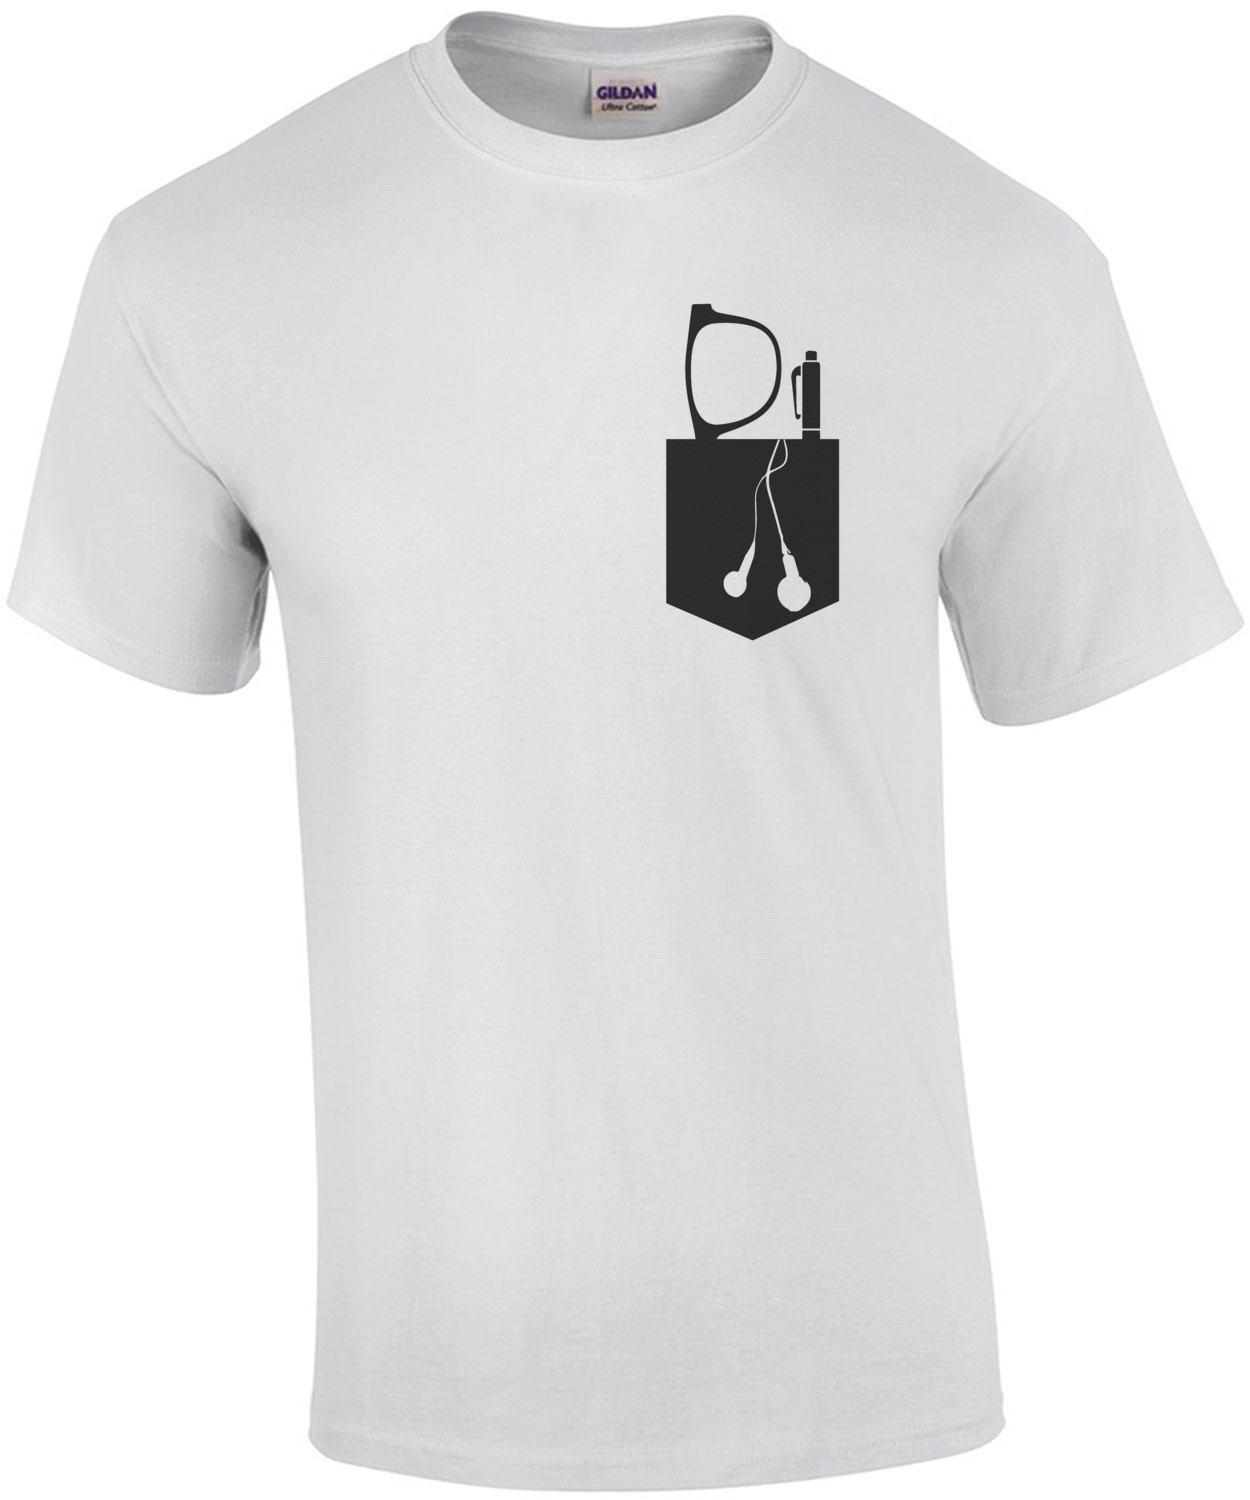 Glasses, Pen, and Ear Buds In Pocket T-Shirt